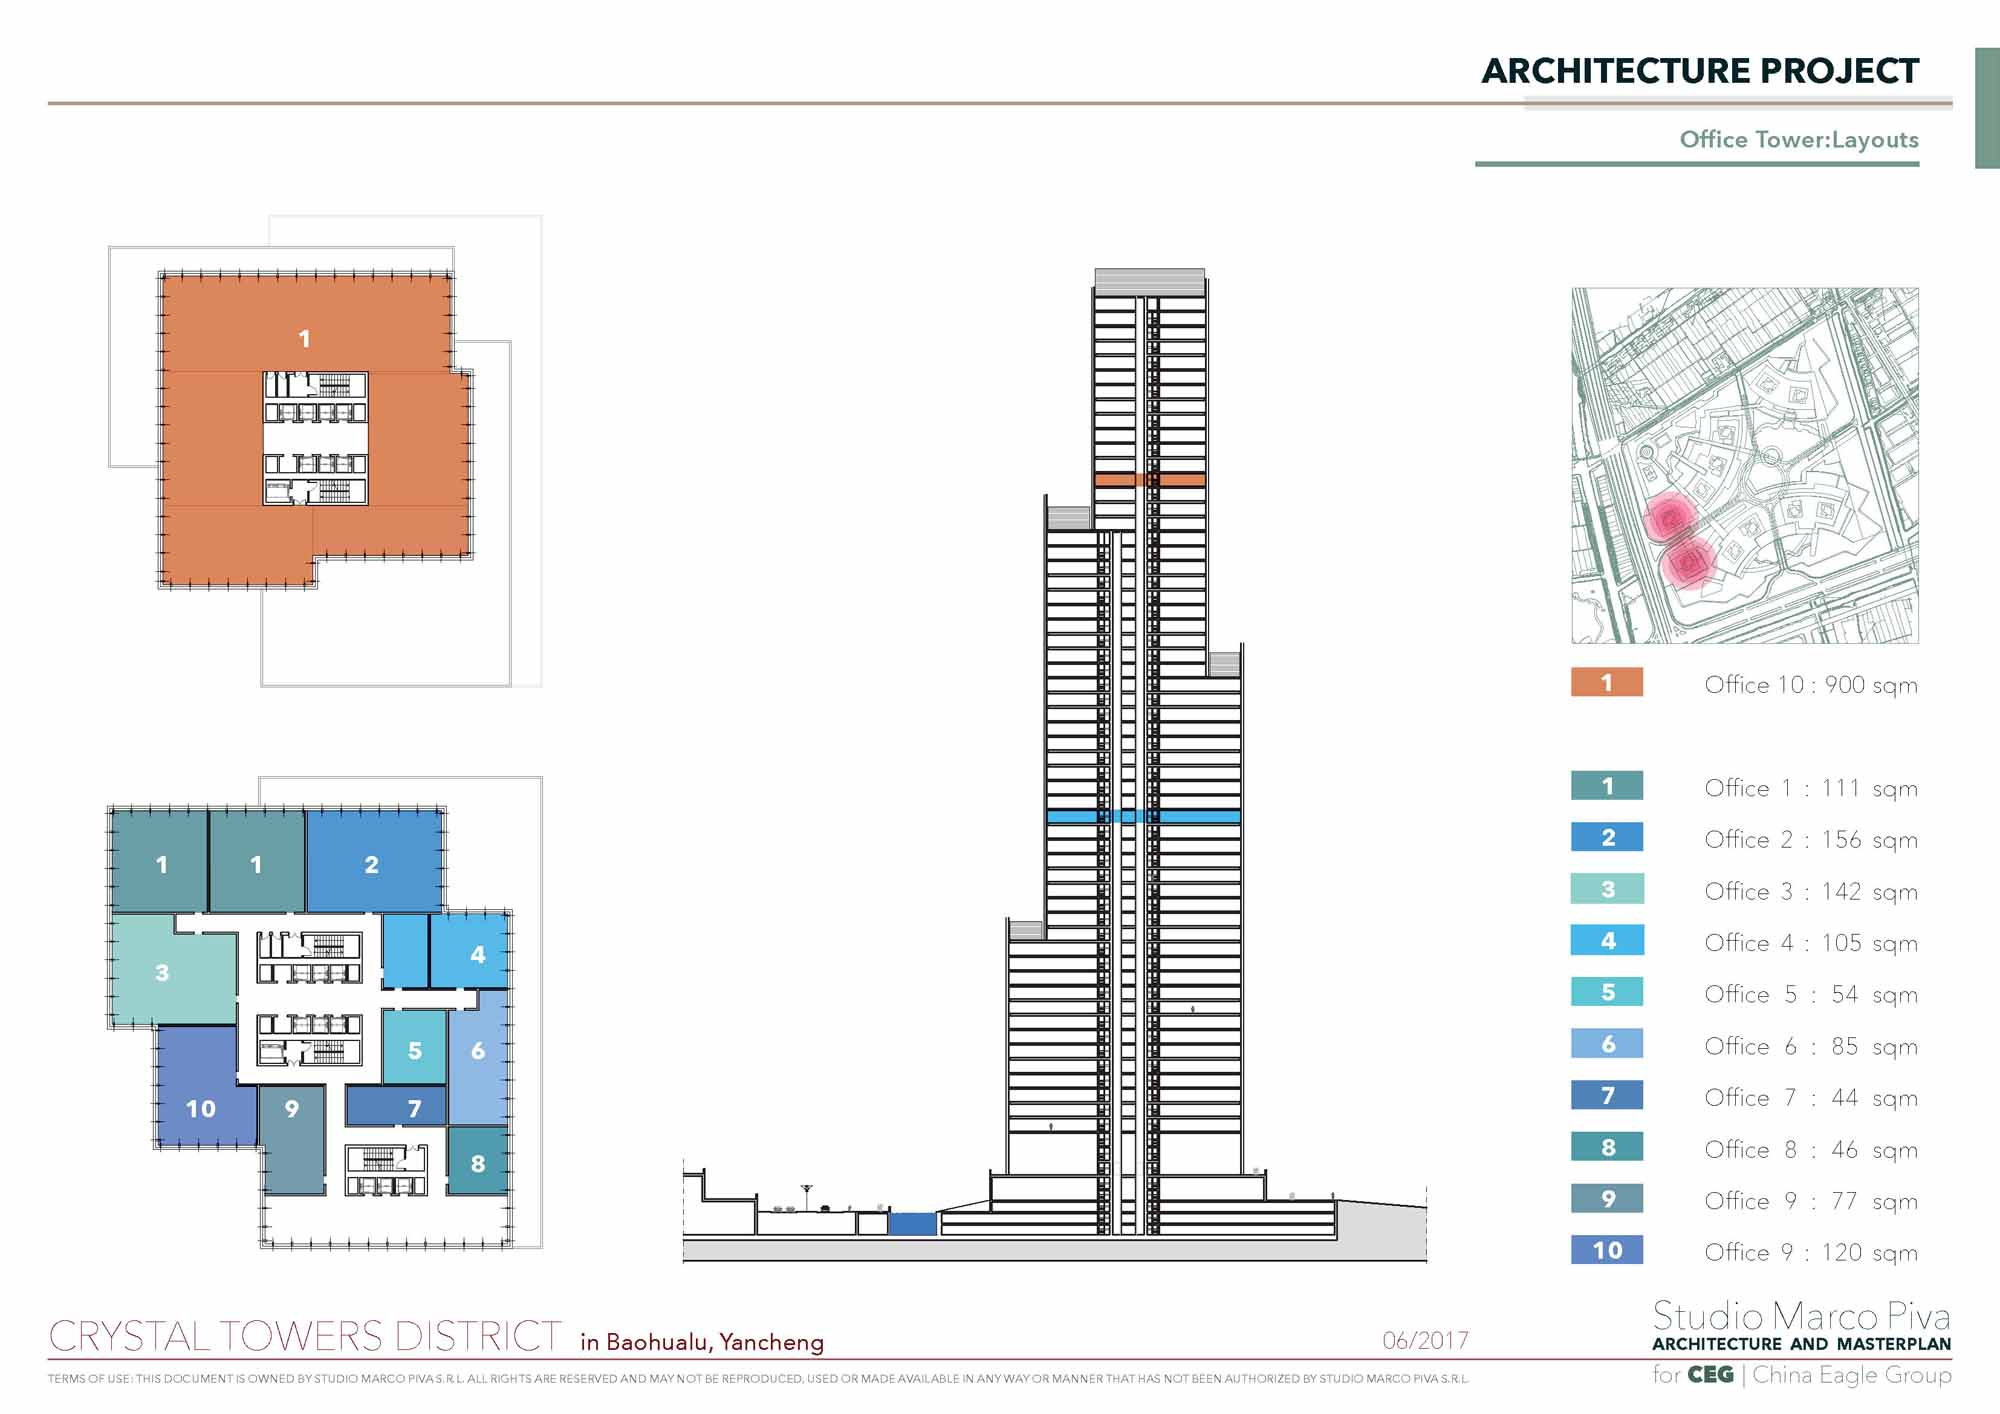 Crystal Towers office tower layout Studio Marco Piva}